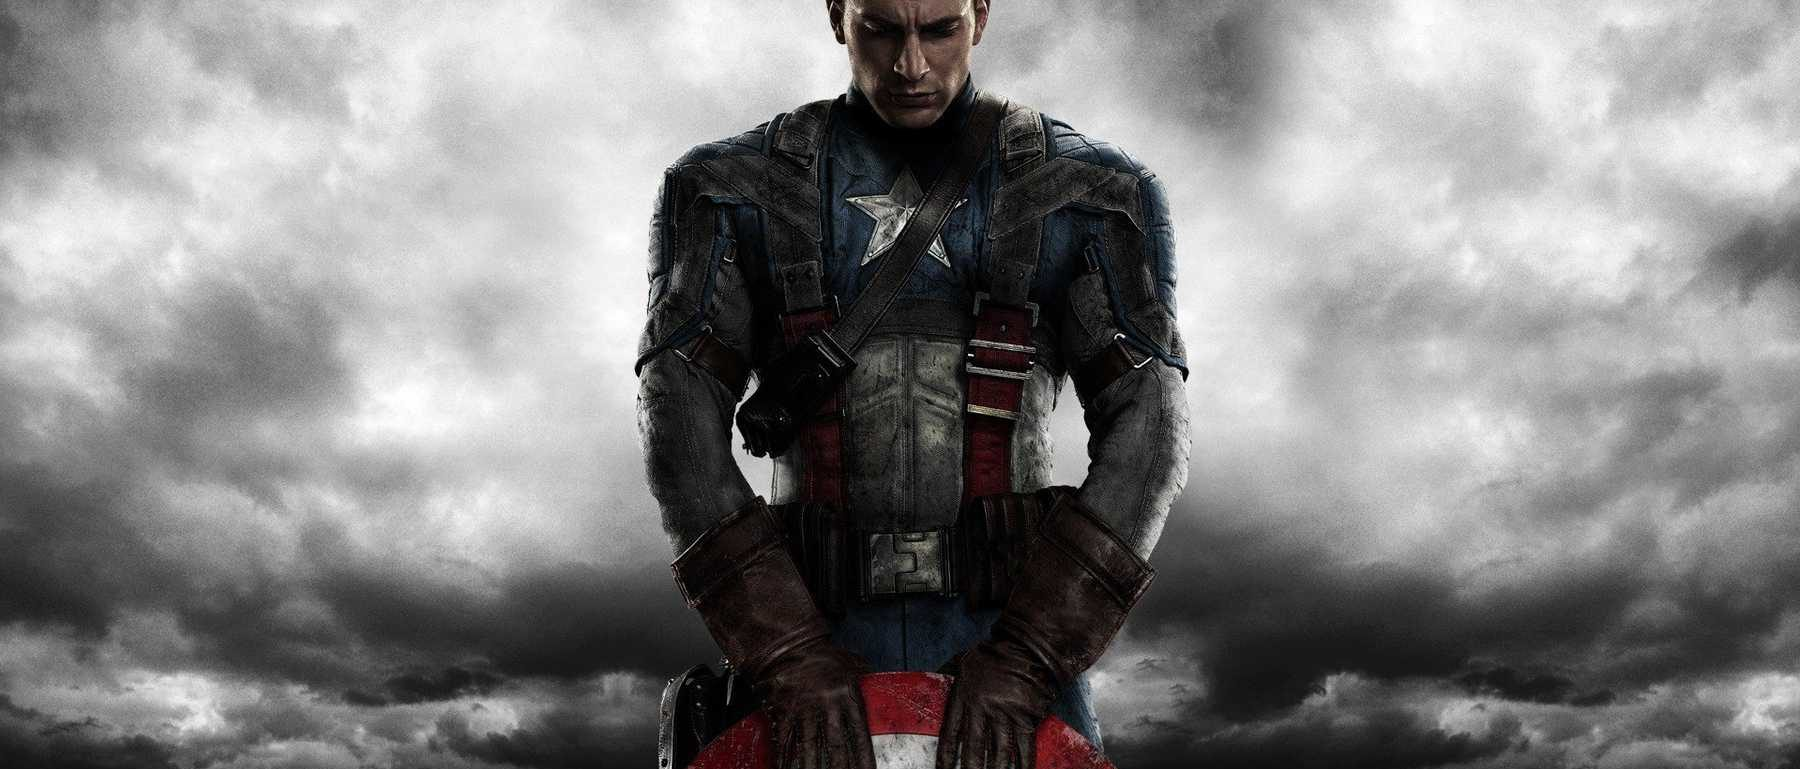 Chris Evans as Captain America in the MCU